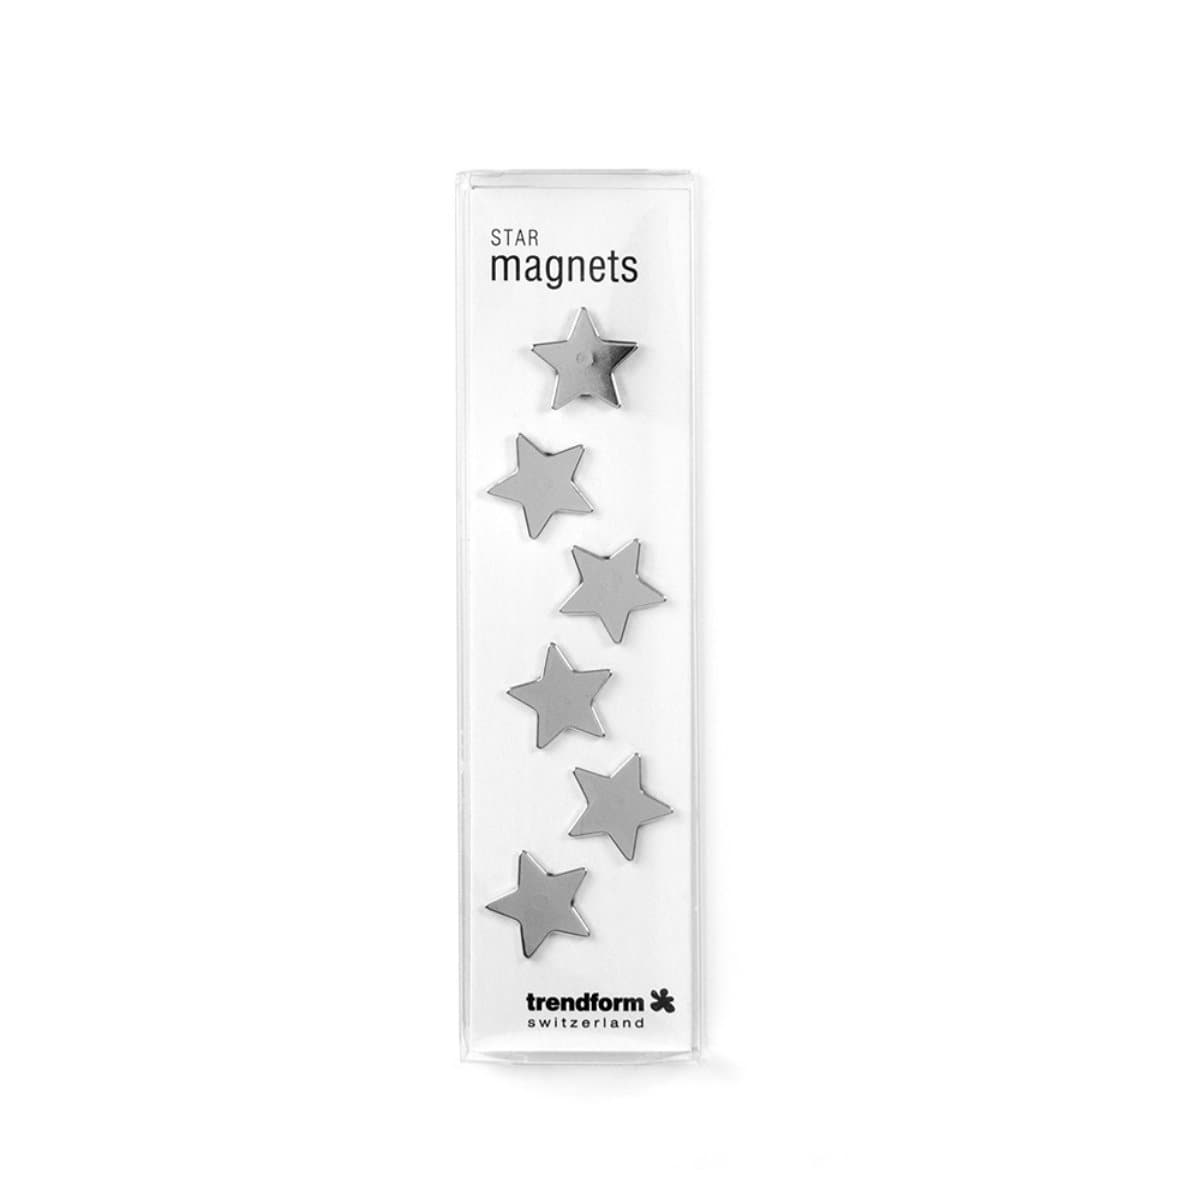 Trendform Magnets STAR, 6/pack, Chrome Plated